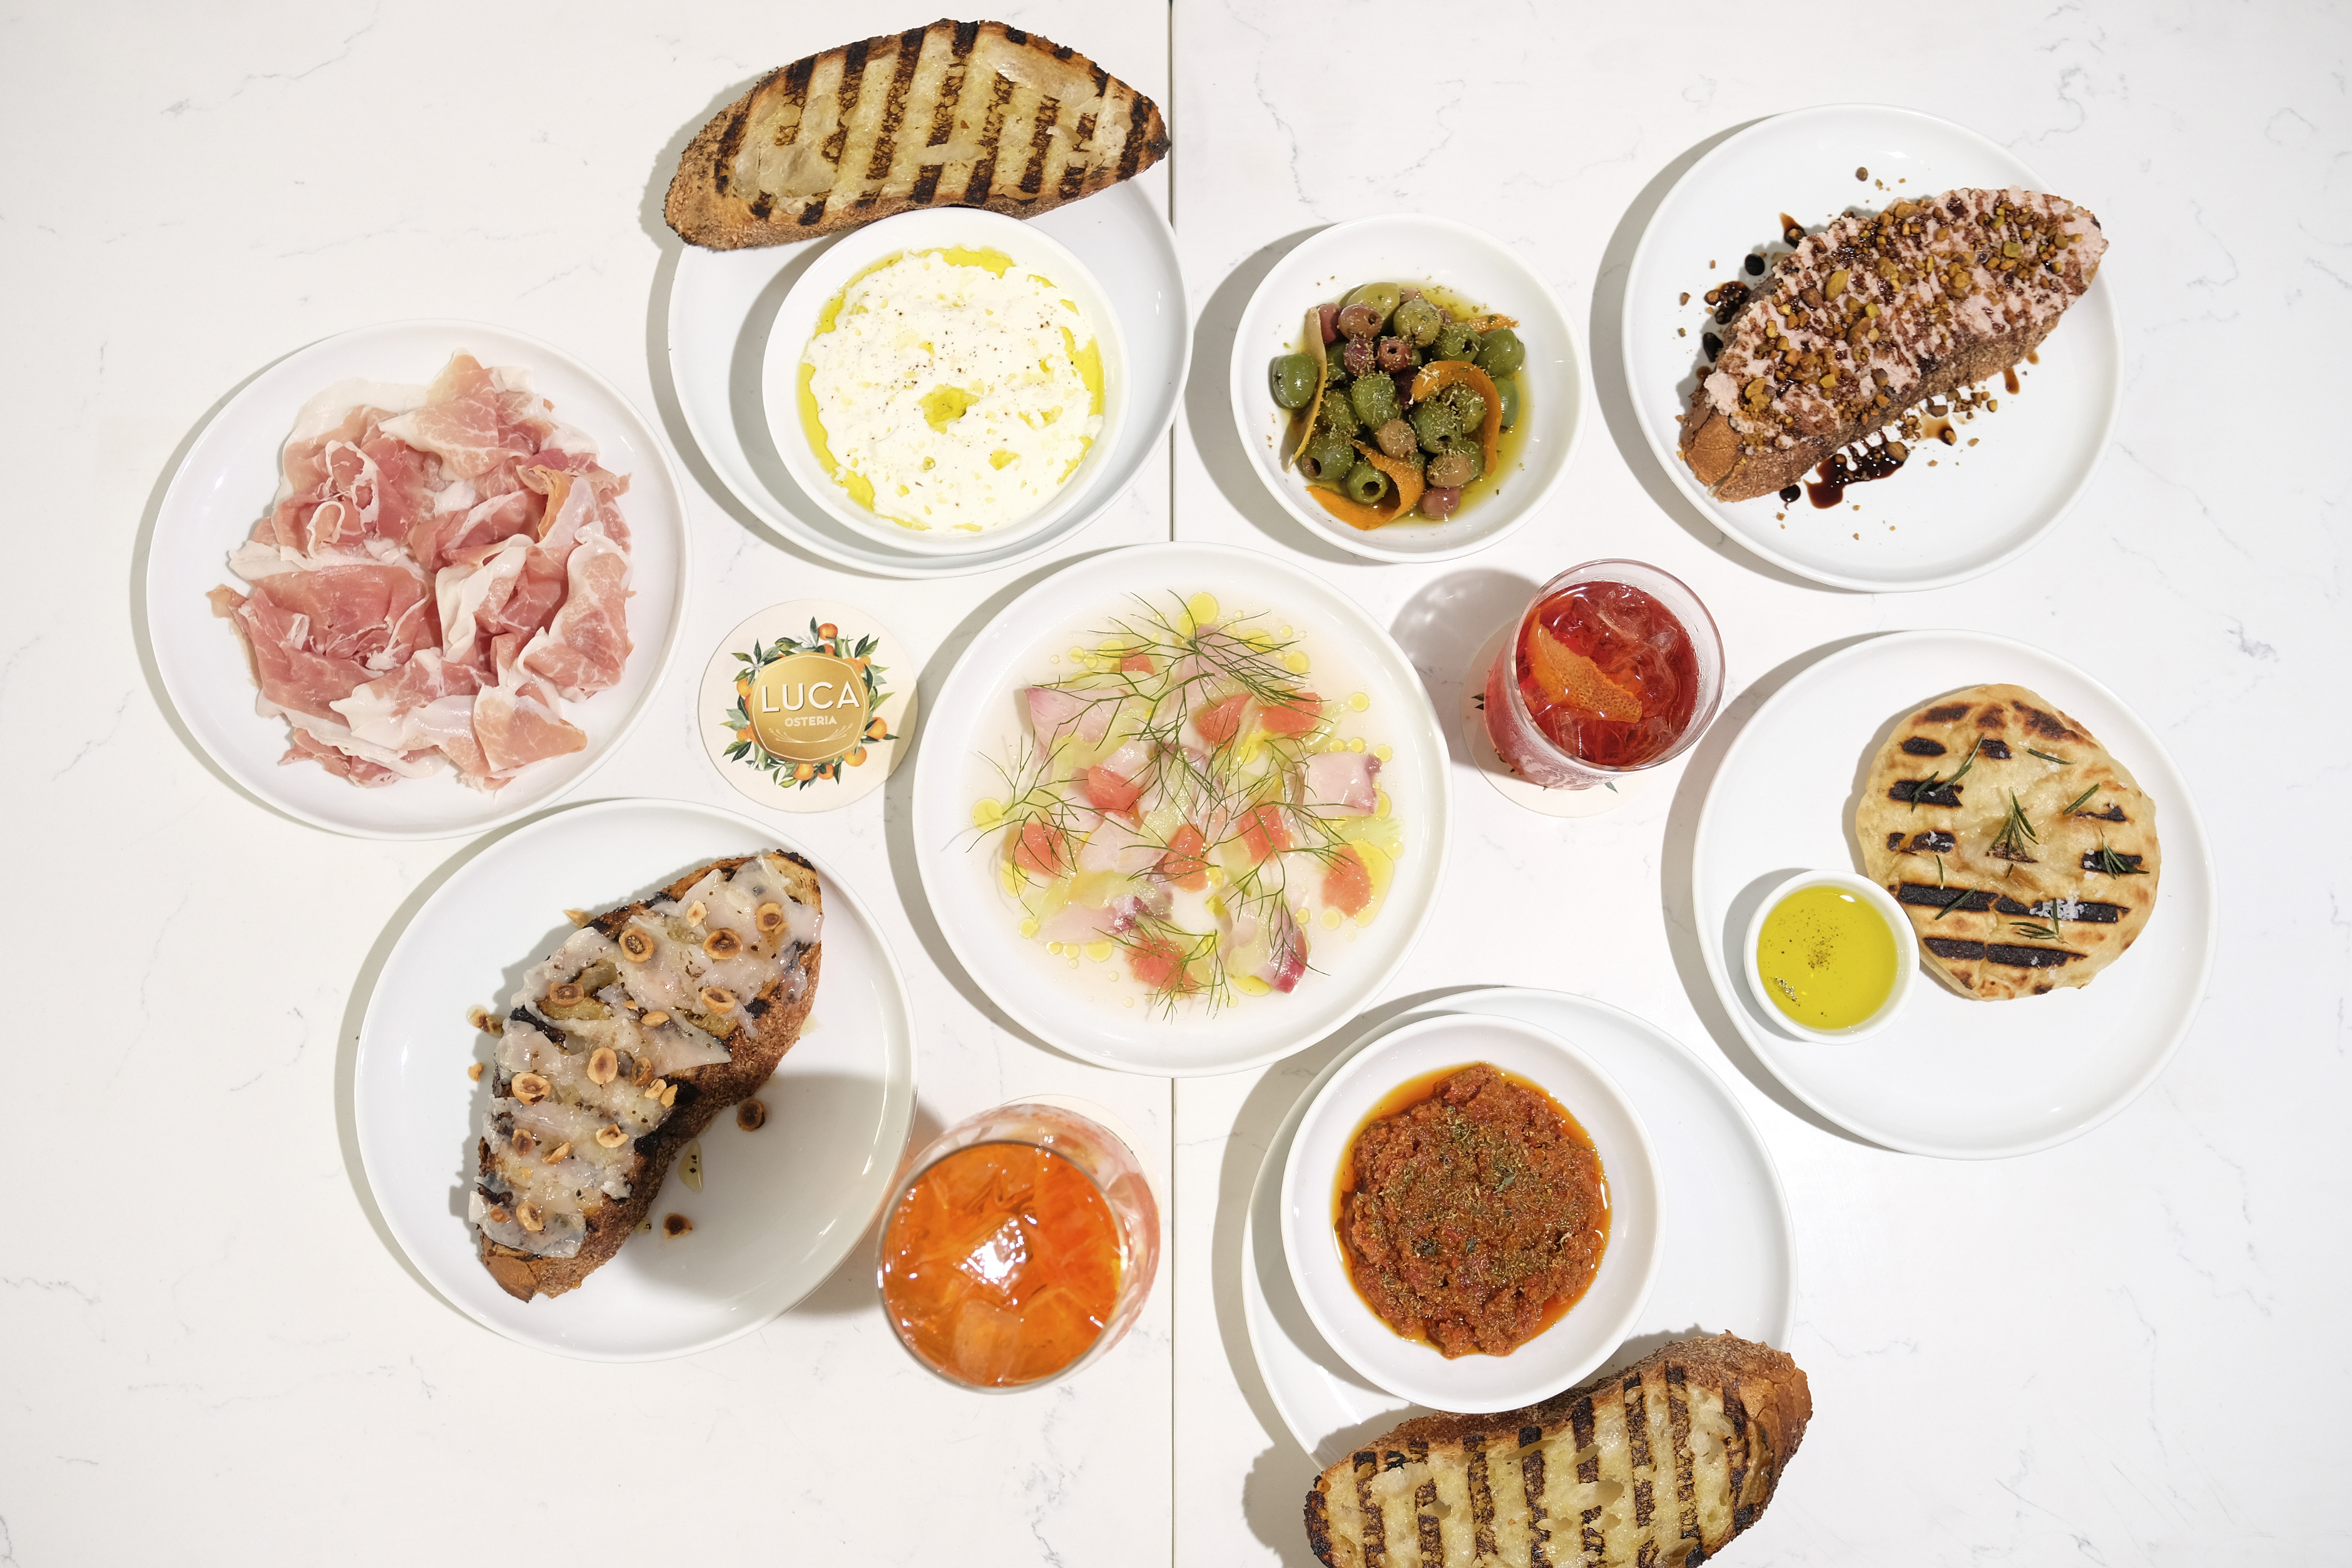 White plates on a white background with featuring lots of sliced meats, oranges, sauces, and grilled breads.